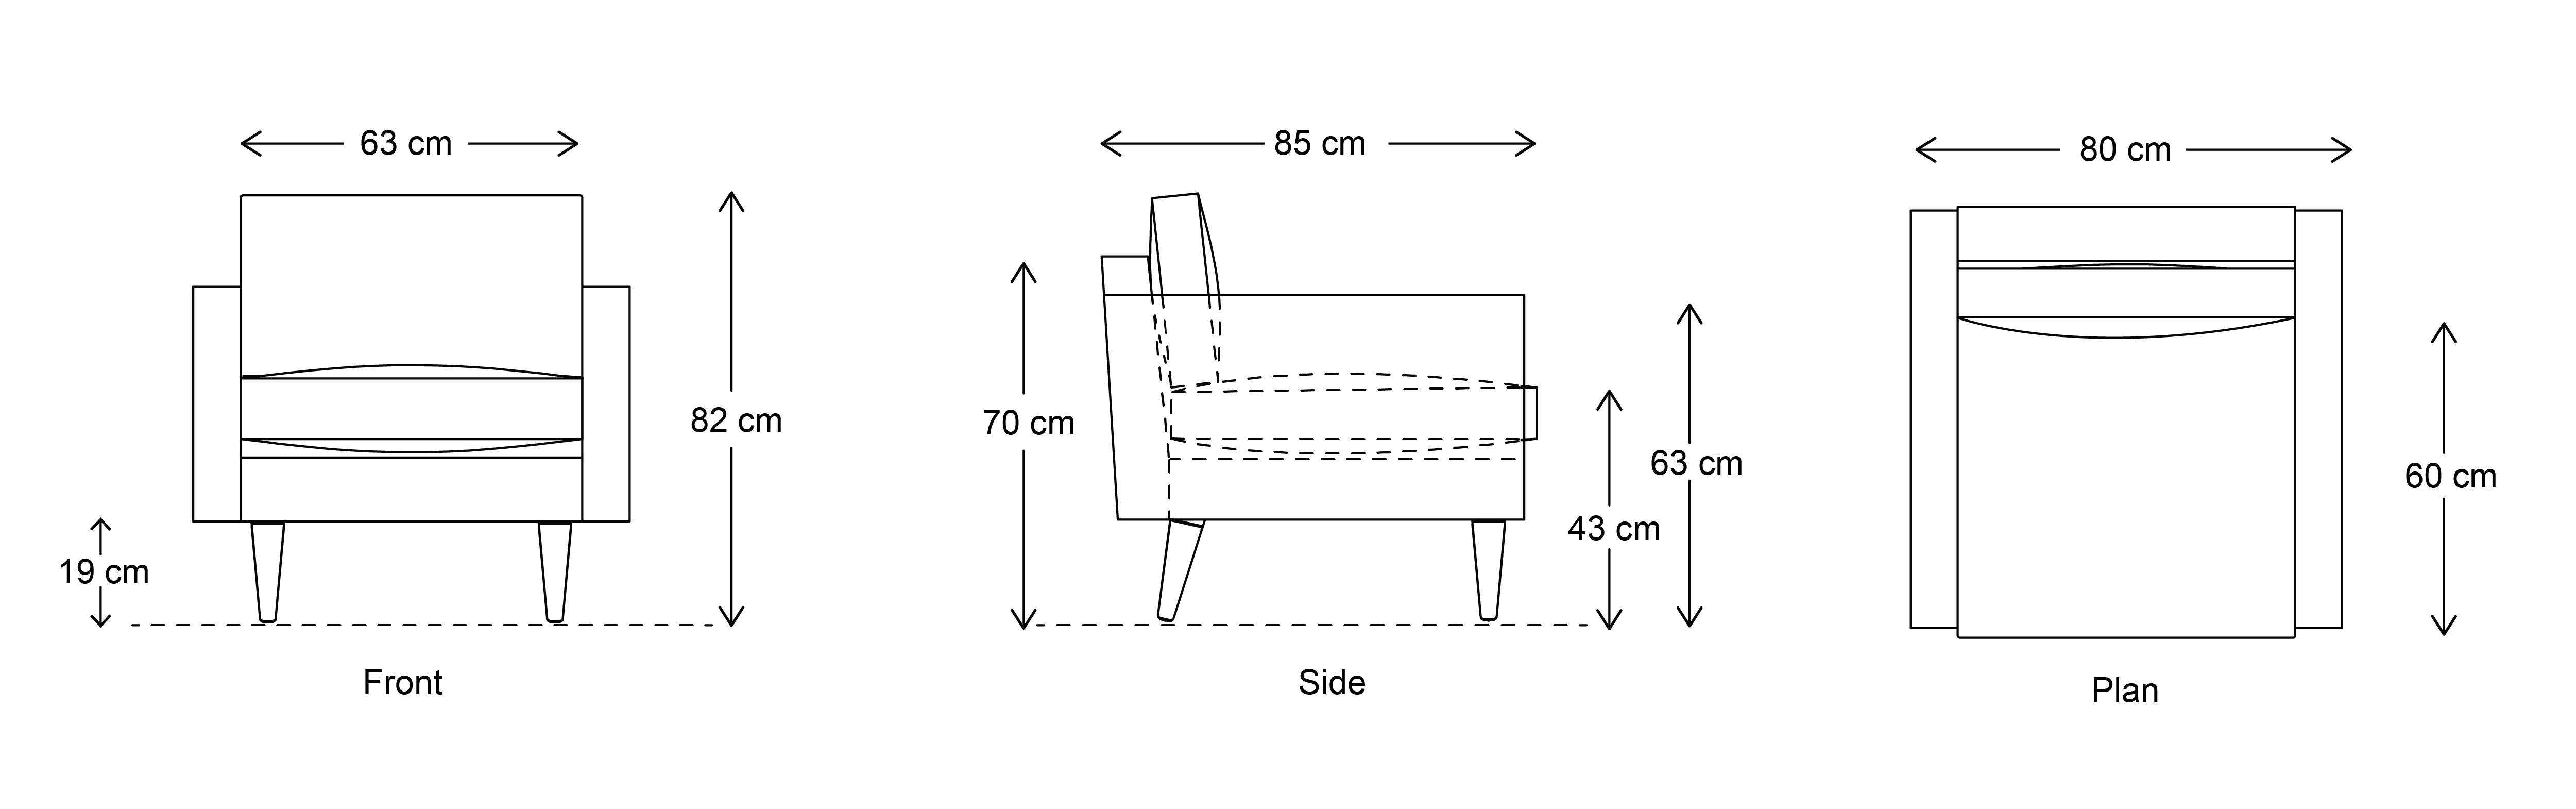 Model 01 Armchair dimensions drawing